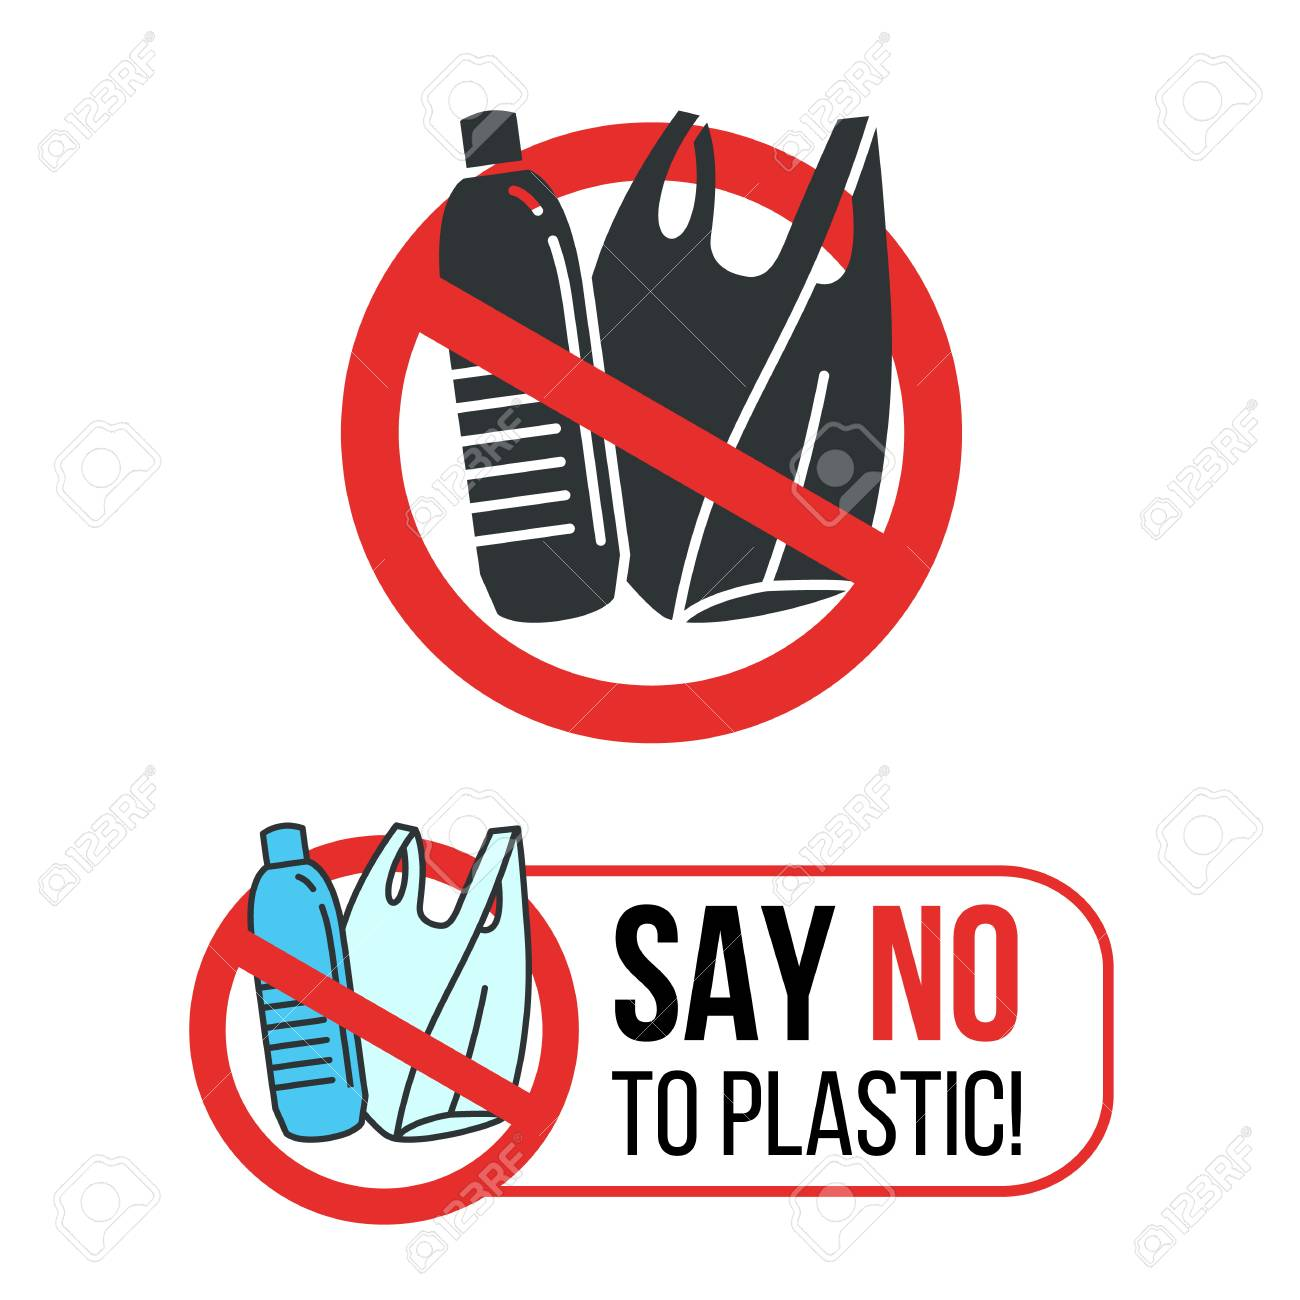 Say no to Plastic sign with Plastic water bottle and plastic bag in red stop circle vector design - 104146397